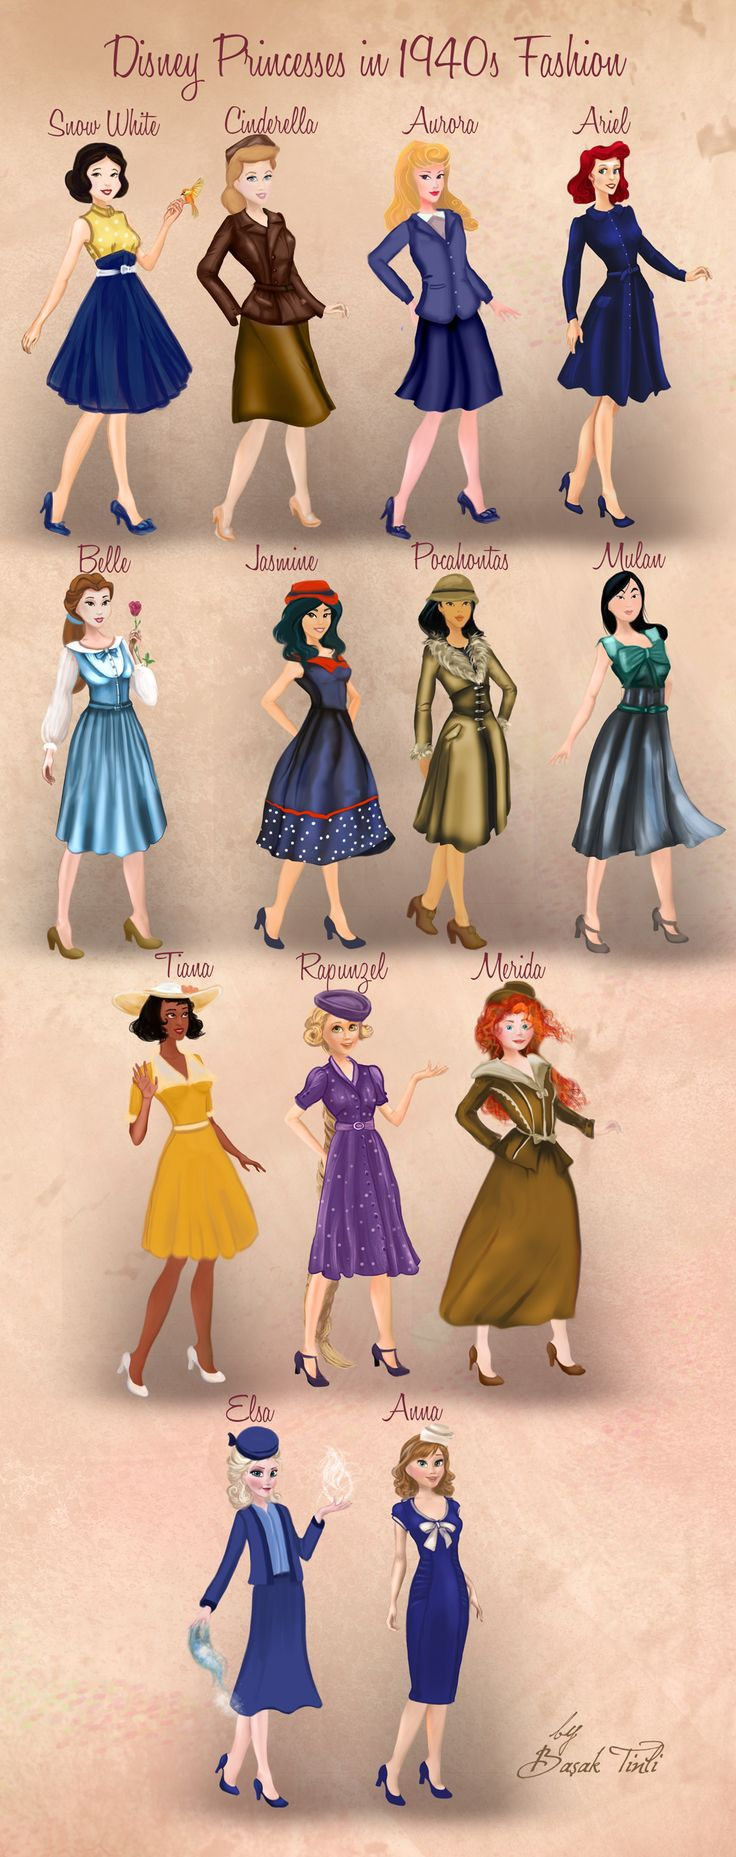 Disney Princesses in 1940s Fashion by Basak Tinli by BasakTinli.deviantart.com on @DeviantArt